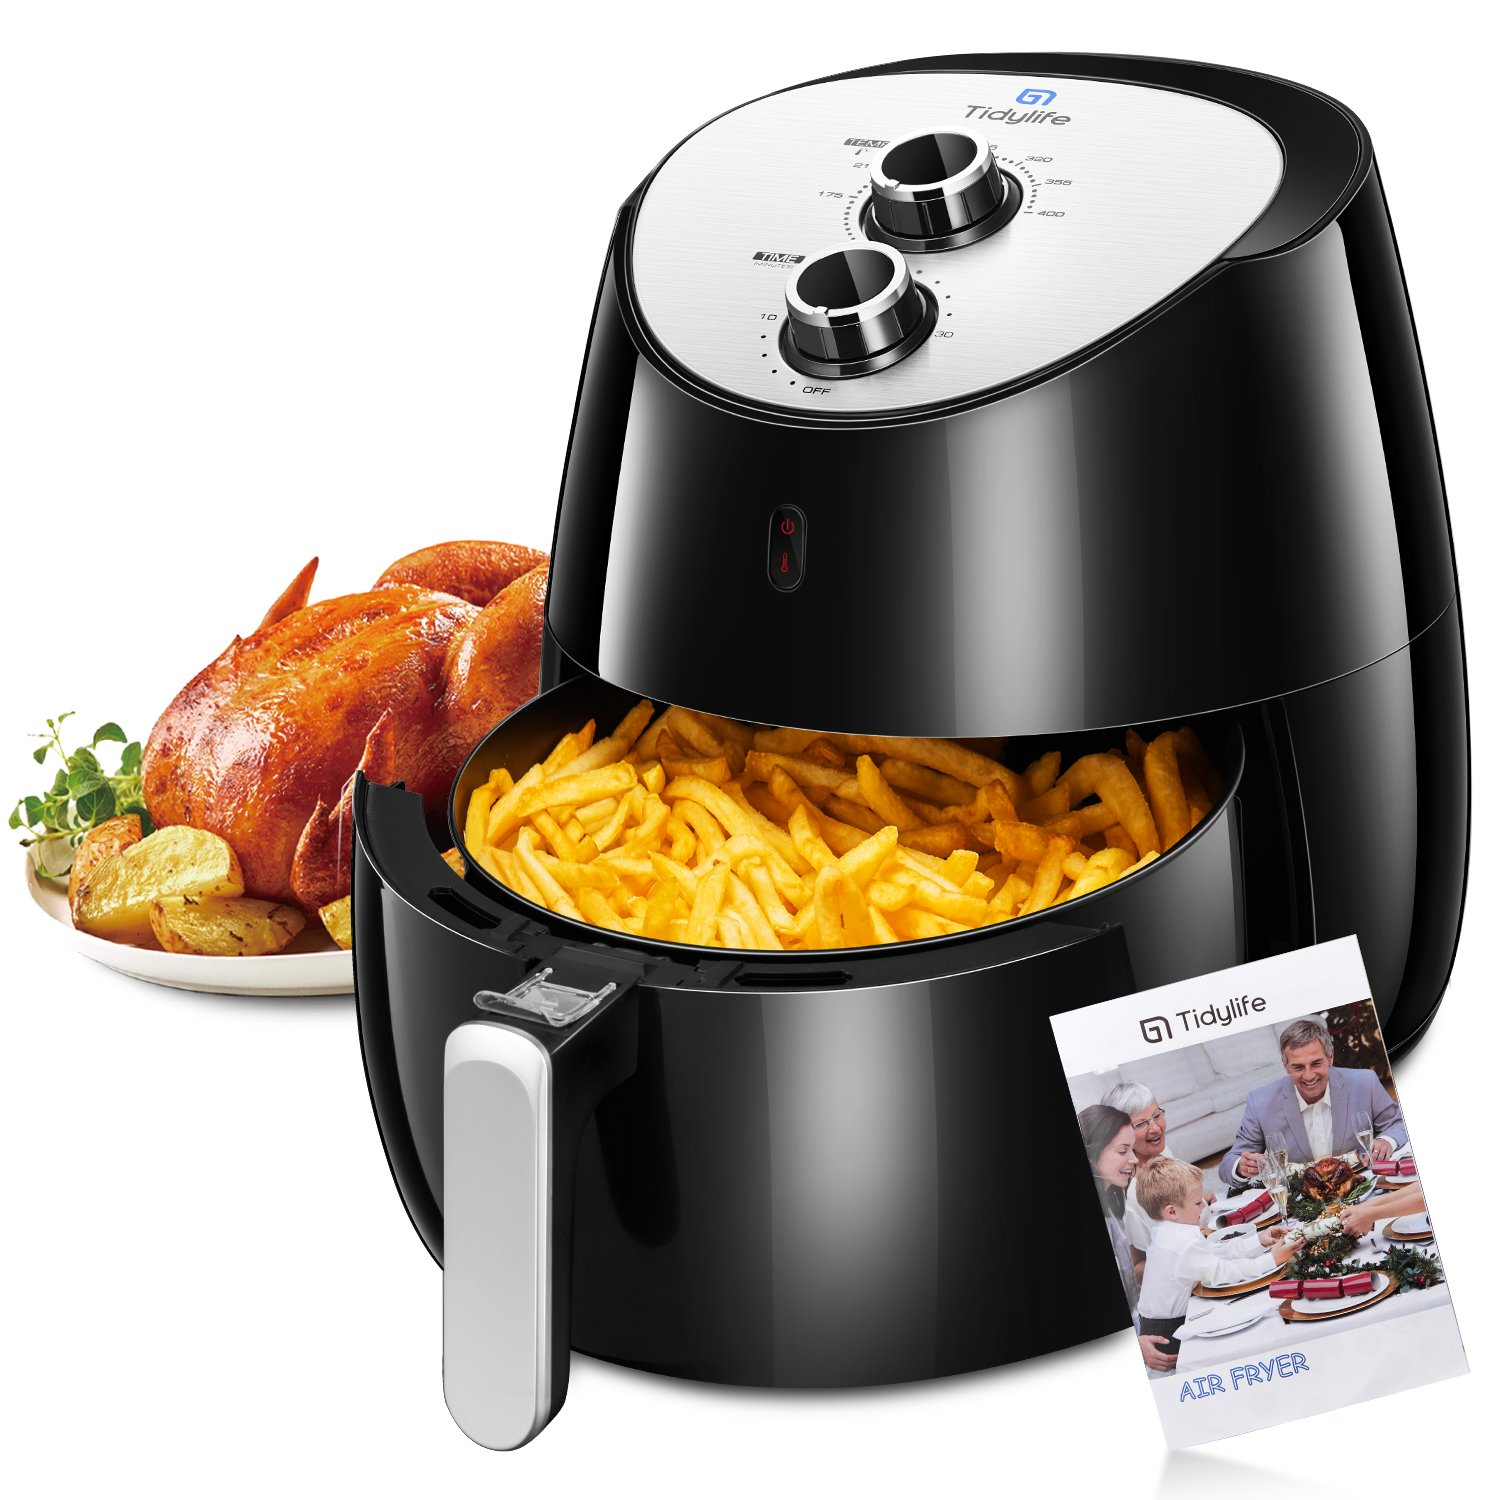 Tidylife 5.8 QT Air Fryer, 1700W 8 in 1 Oil Free Airfryer with Cookbook(over 32 receipes), Dishwasher Safe Basket,Timer and Auto Shut Off For Healthy Fried Food (5.8QT)